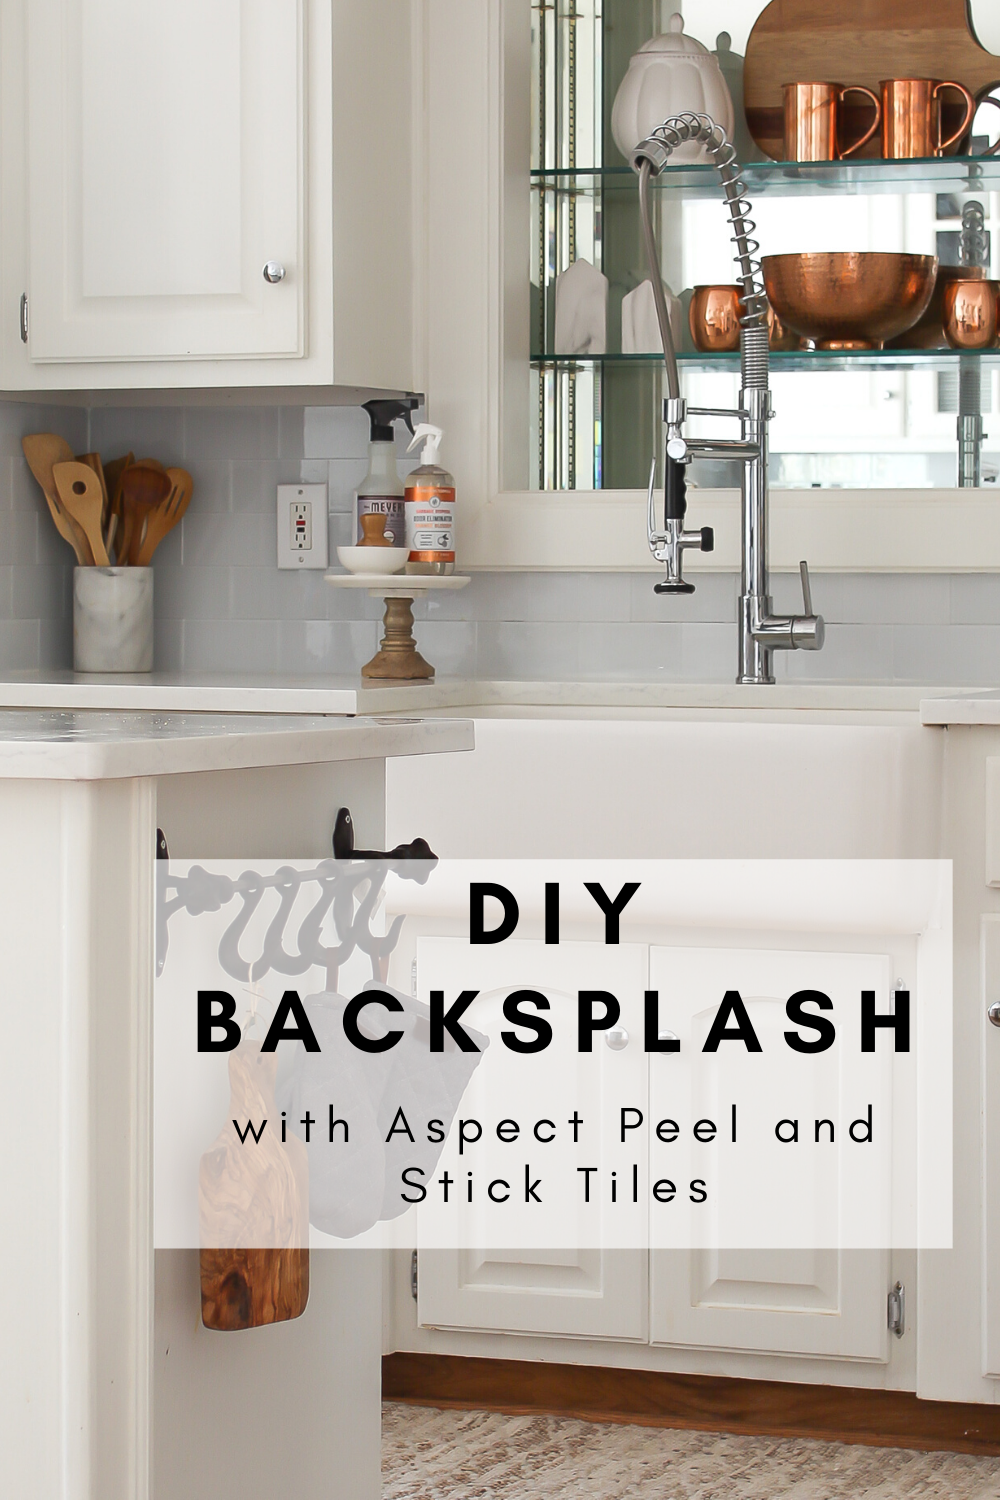 Diy Backsplash With Aspect Peel And Stick Tiles Savvy Apron In 2020 Diy Backsplash Stick On Tiles Peel And Stick Tile